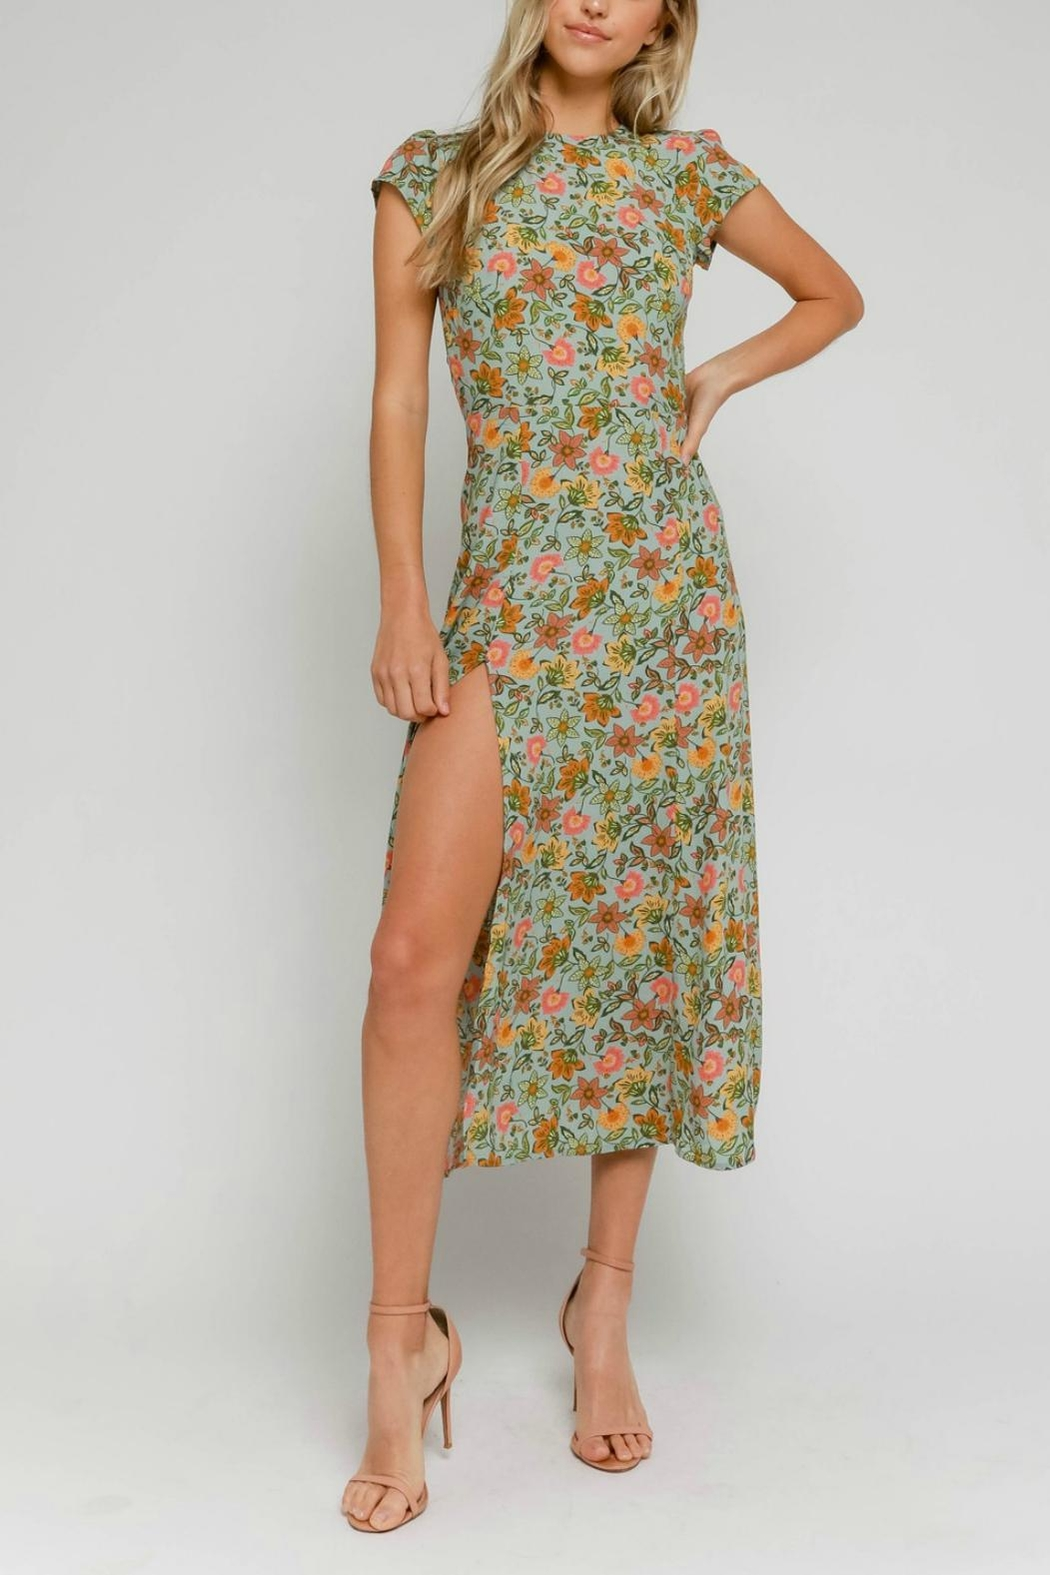 Pretty Little Things Floral Midi Dress - Main Image